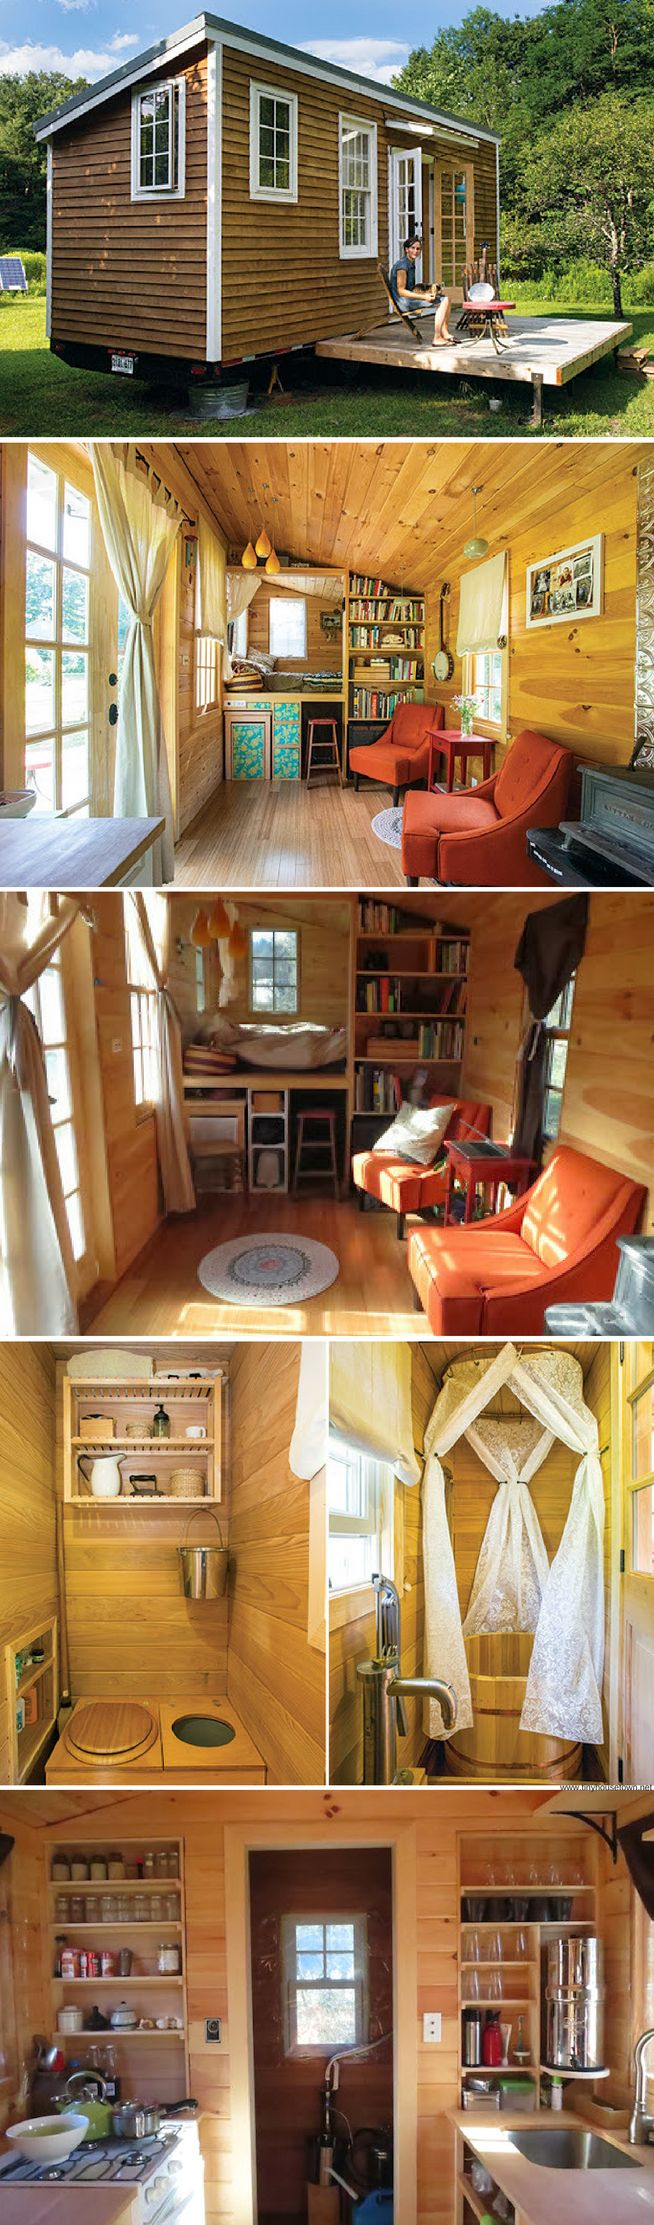 765 best Tiny Homes images on Pinterest Tiny house living Tiny